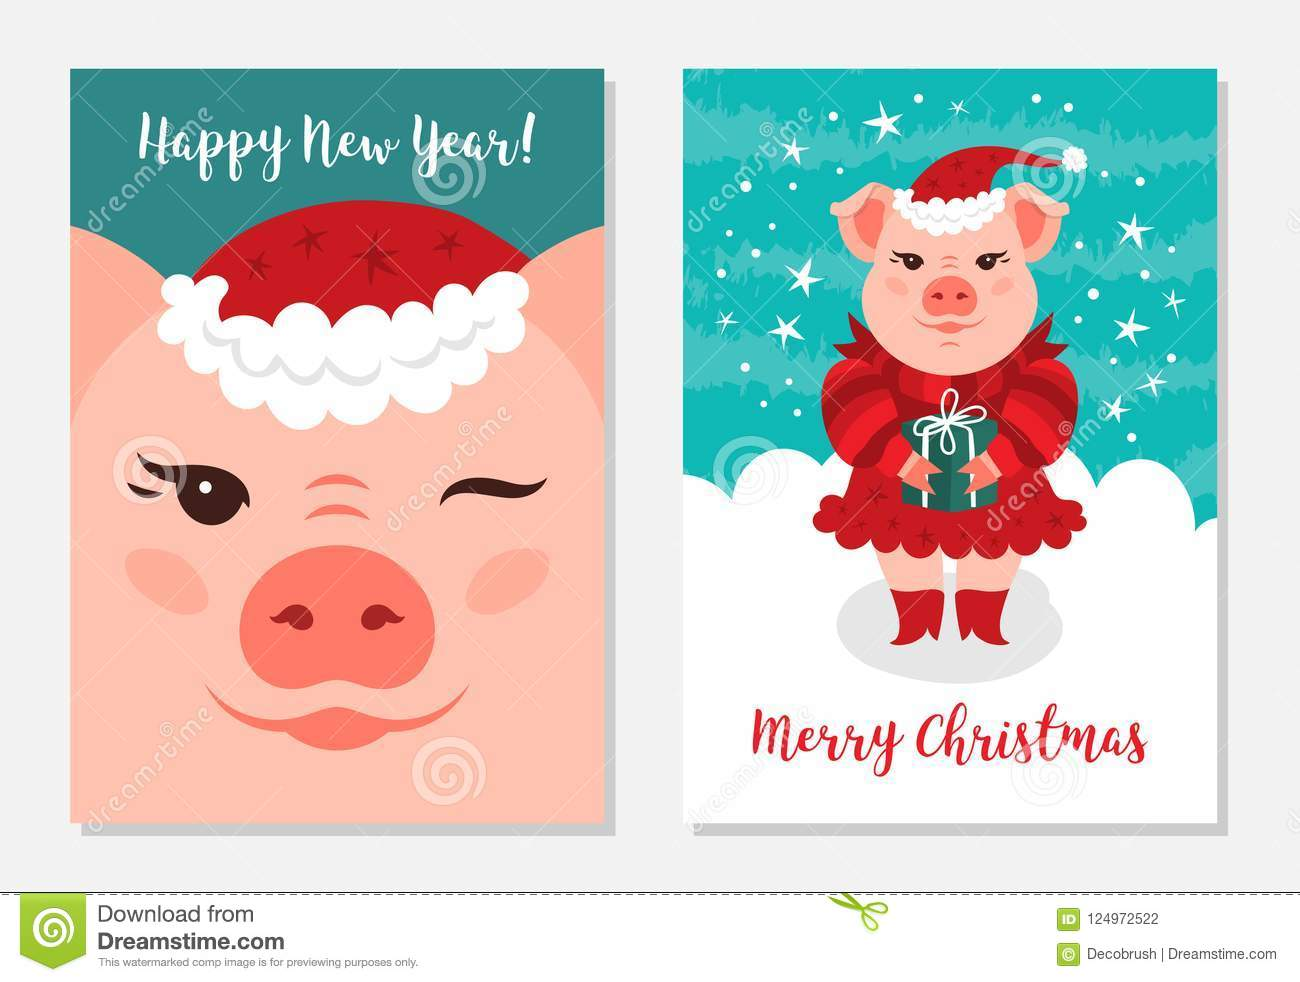 Funny Christmas Cards 2019 Funny Christmas Pigs, Greeting Cards Merry Christmas And New Year